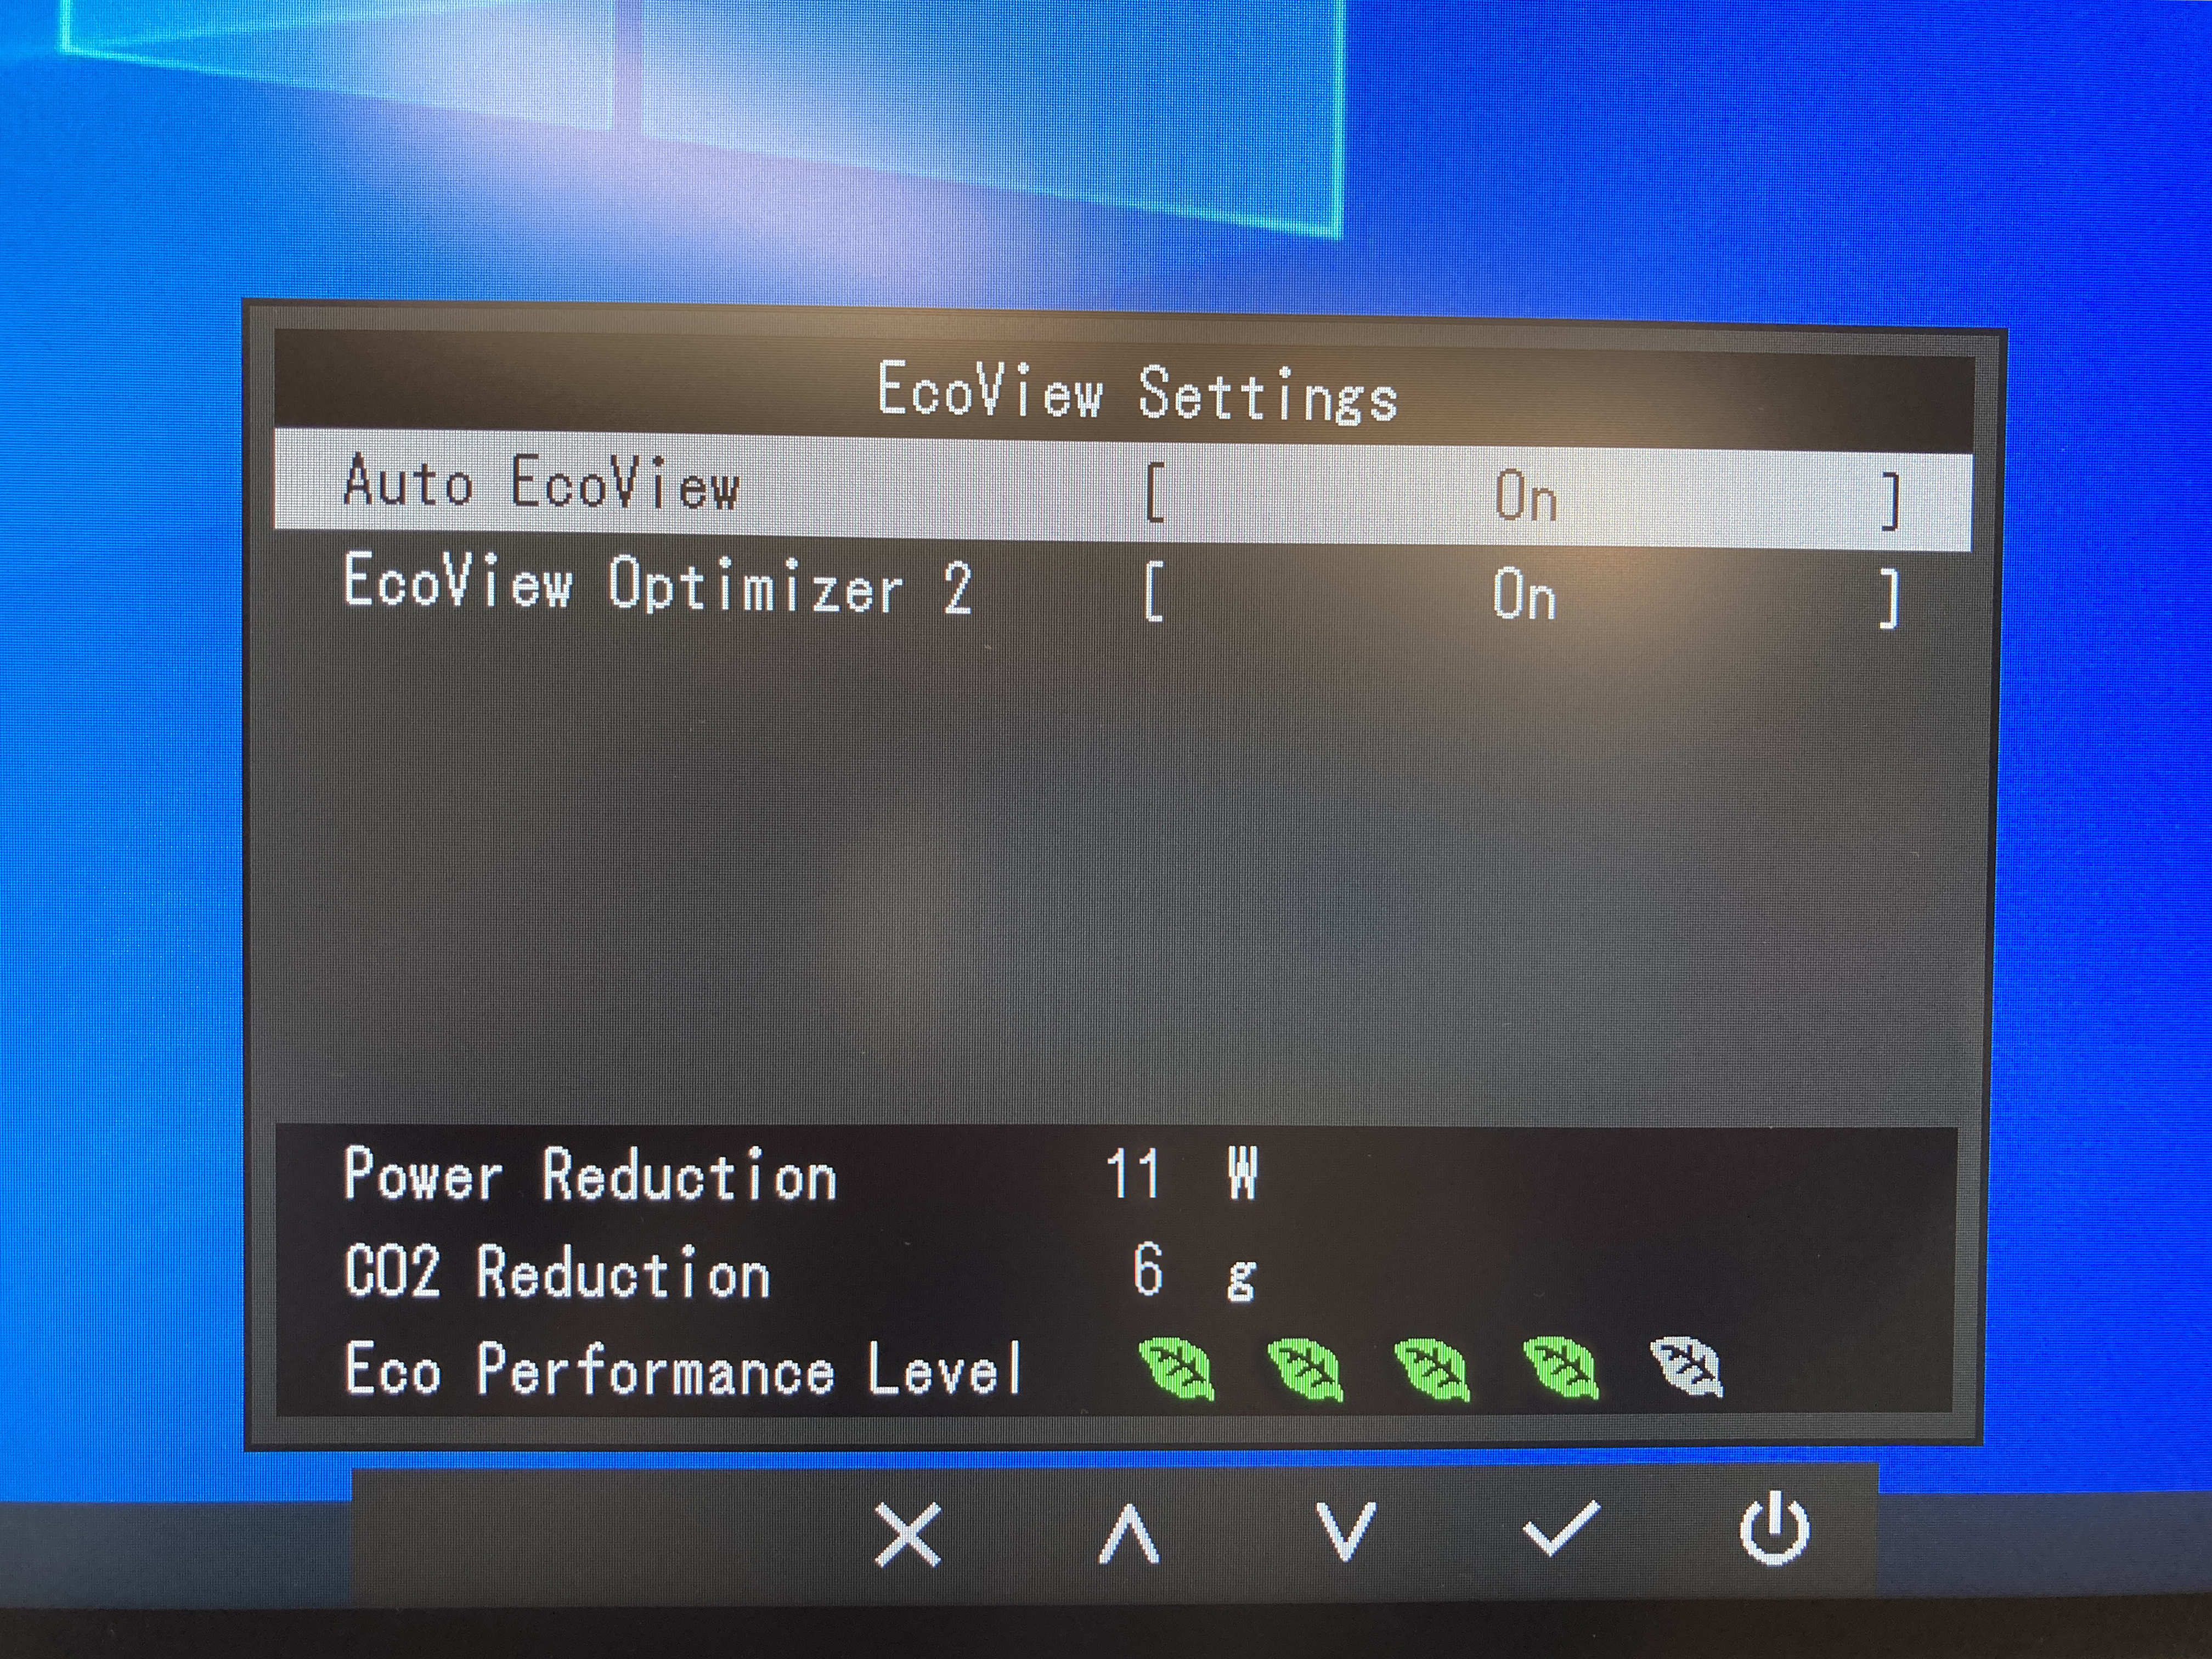 Auto EcoView and EcoView Optimizer 2 automatically adjusts the brightness to optimal levels.